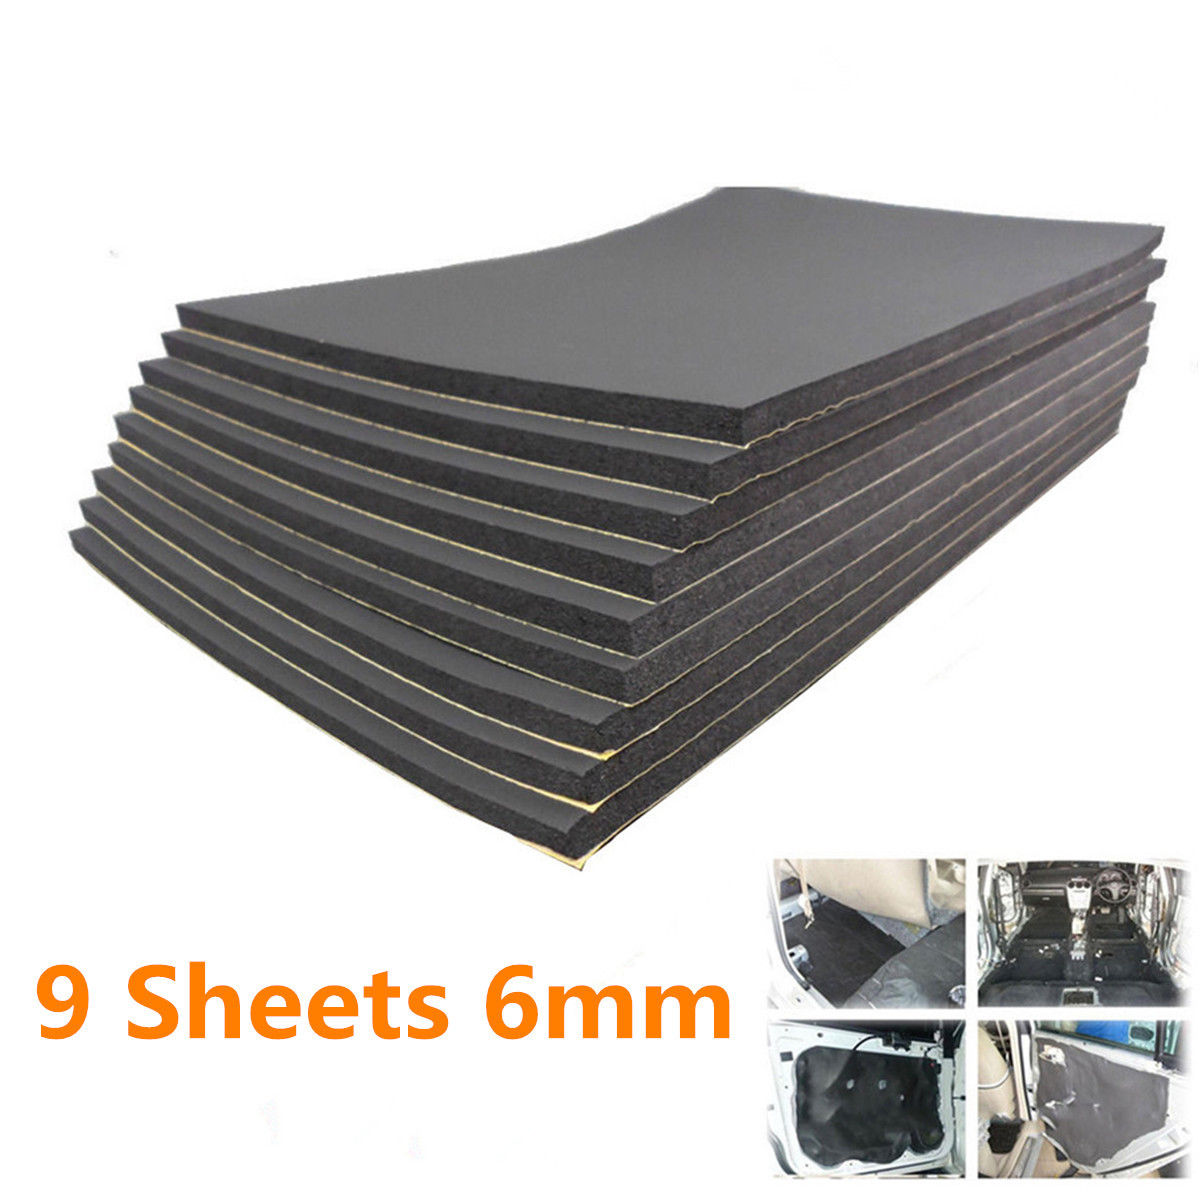 9Pcs Car Auto Van Sound Proofing Deadening Insulation Foam 30cm*50cm*6mm Noise Insulation Deadening Mat Hood Closed Cell Foam image